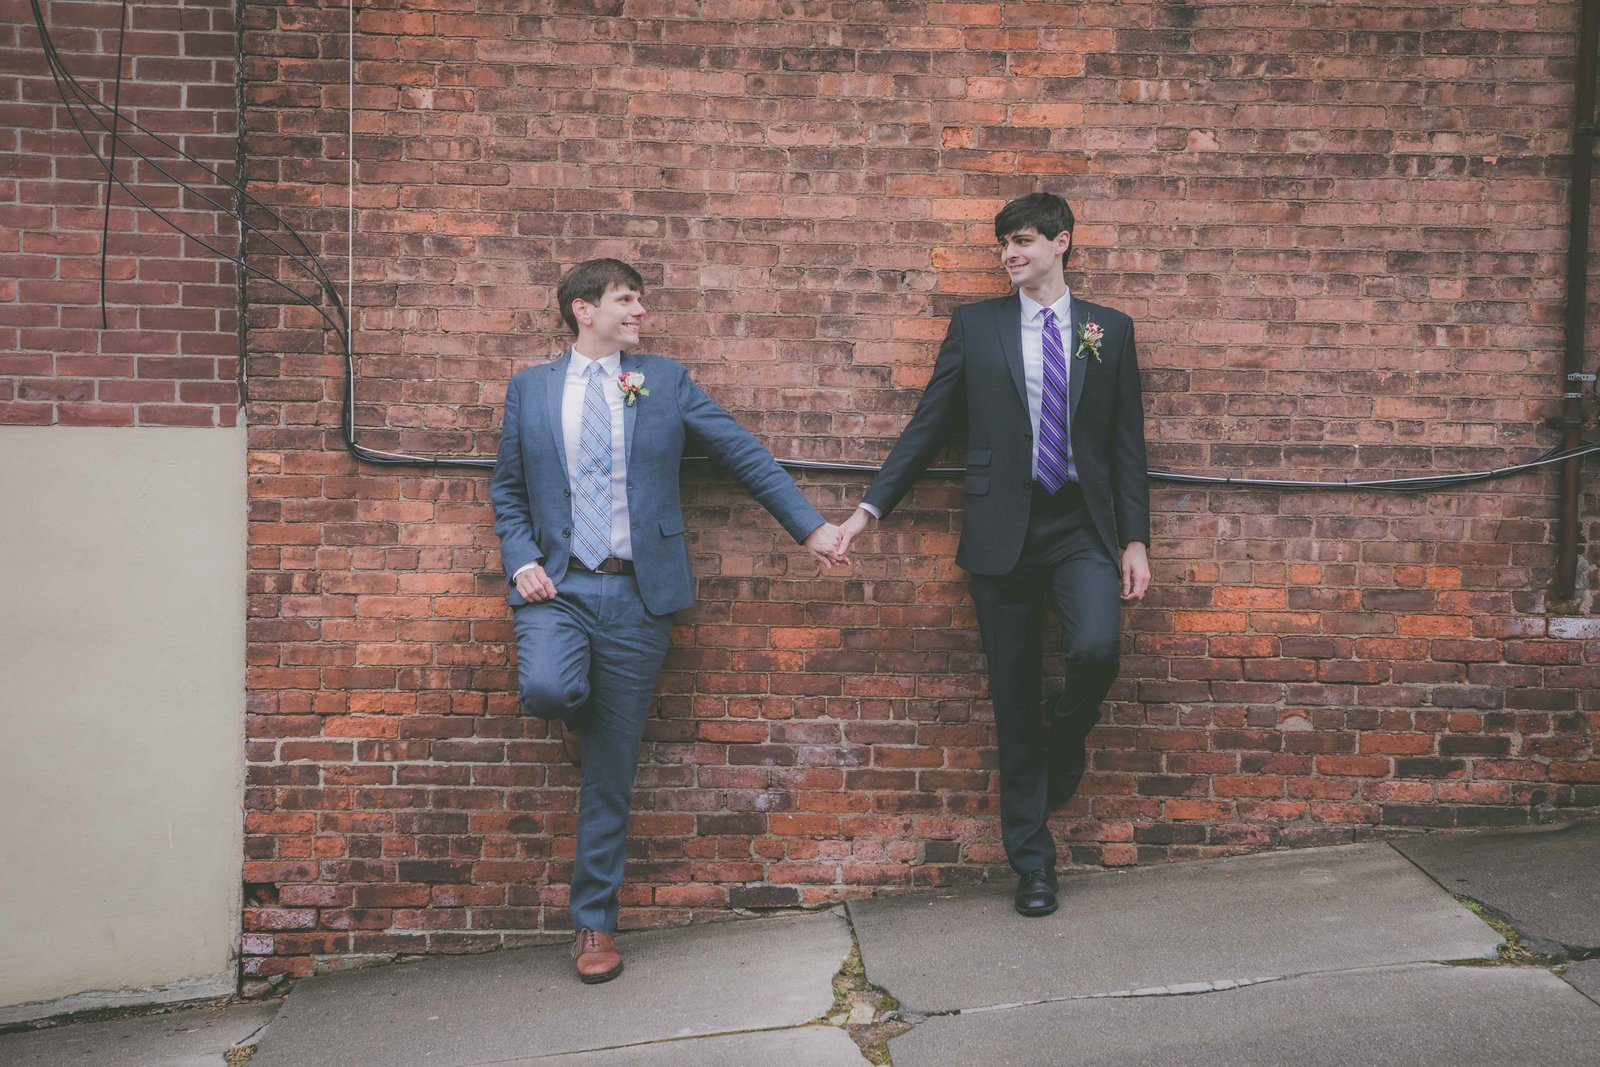 Two grooms hold hands against a brick wall while smiling.